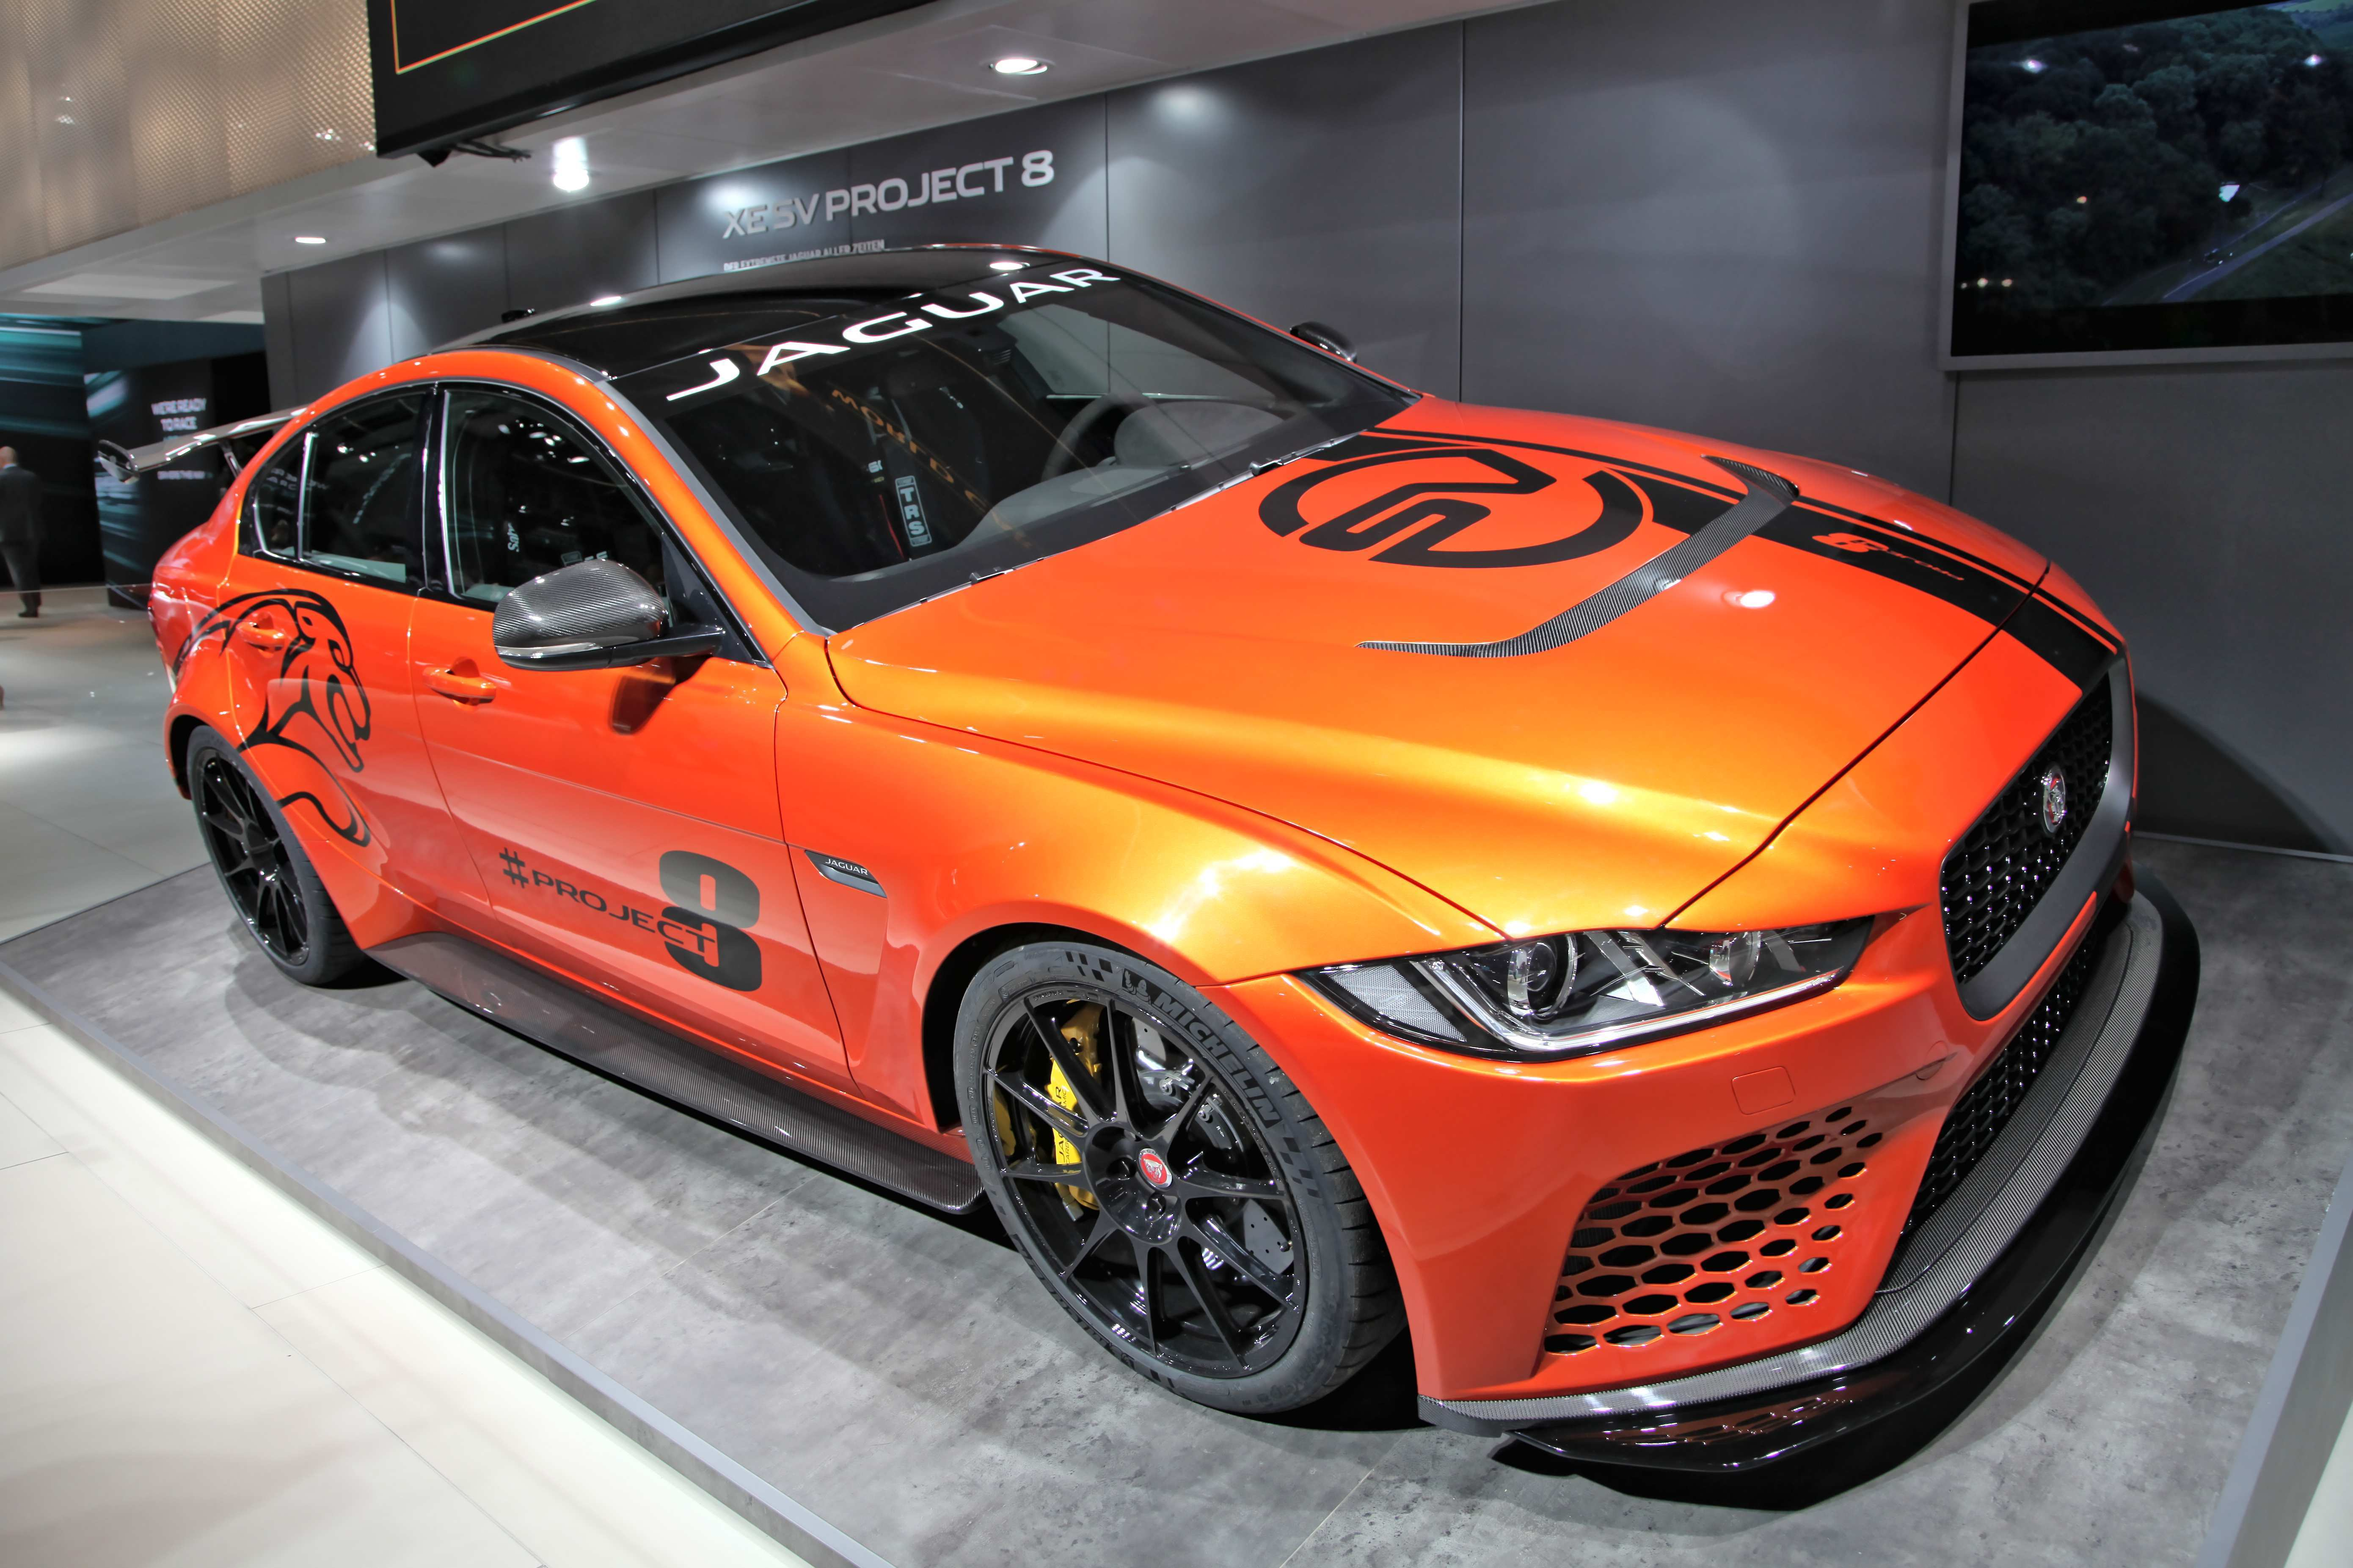 39 Concept of New 2019 Jaguar I Pace Wiki Review Specs And Release Date Performance by New 2019 Jaguar I Pace Wiki Review Specs And Release Date